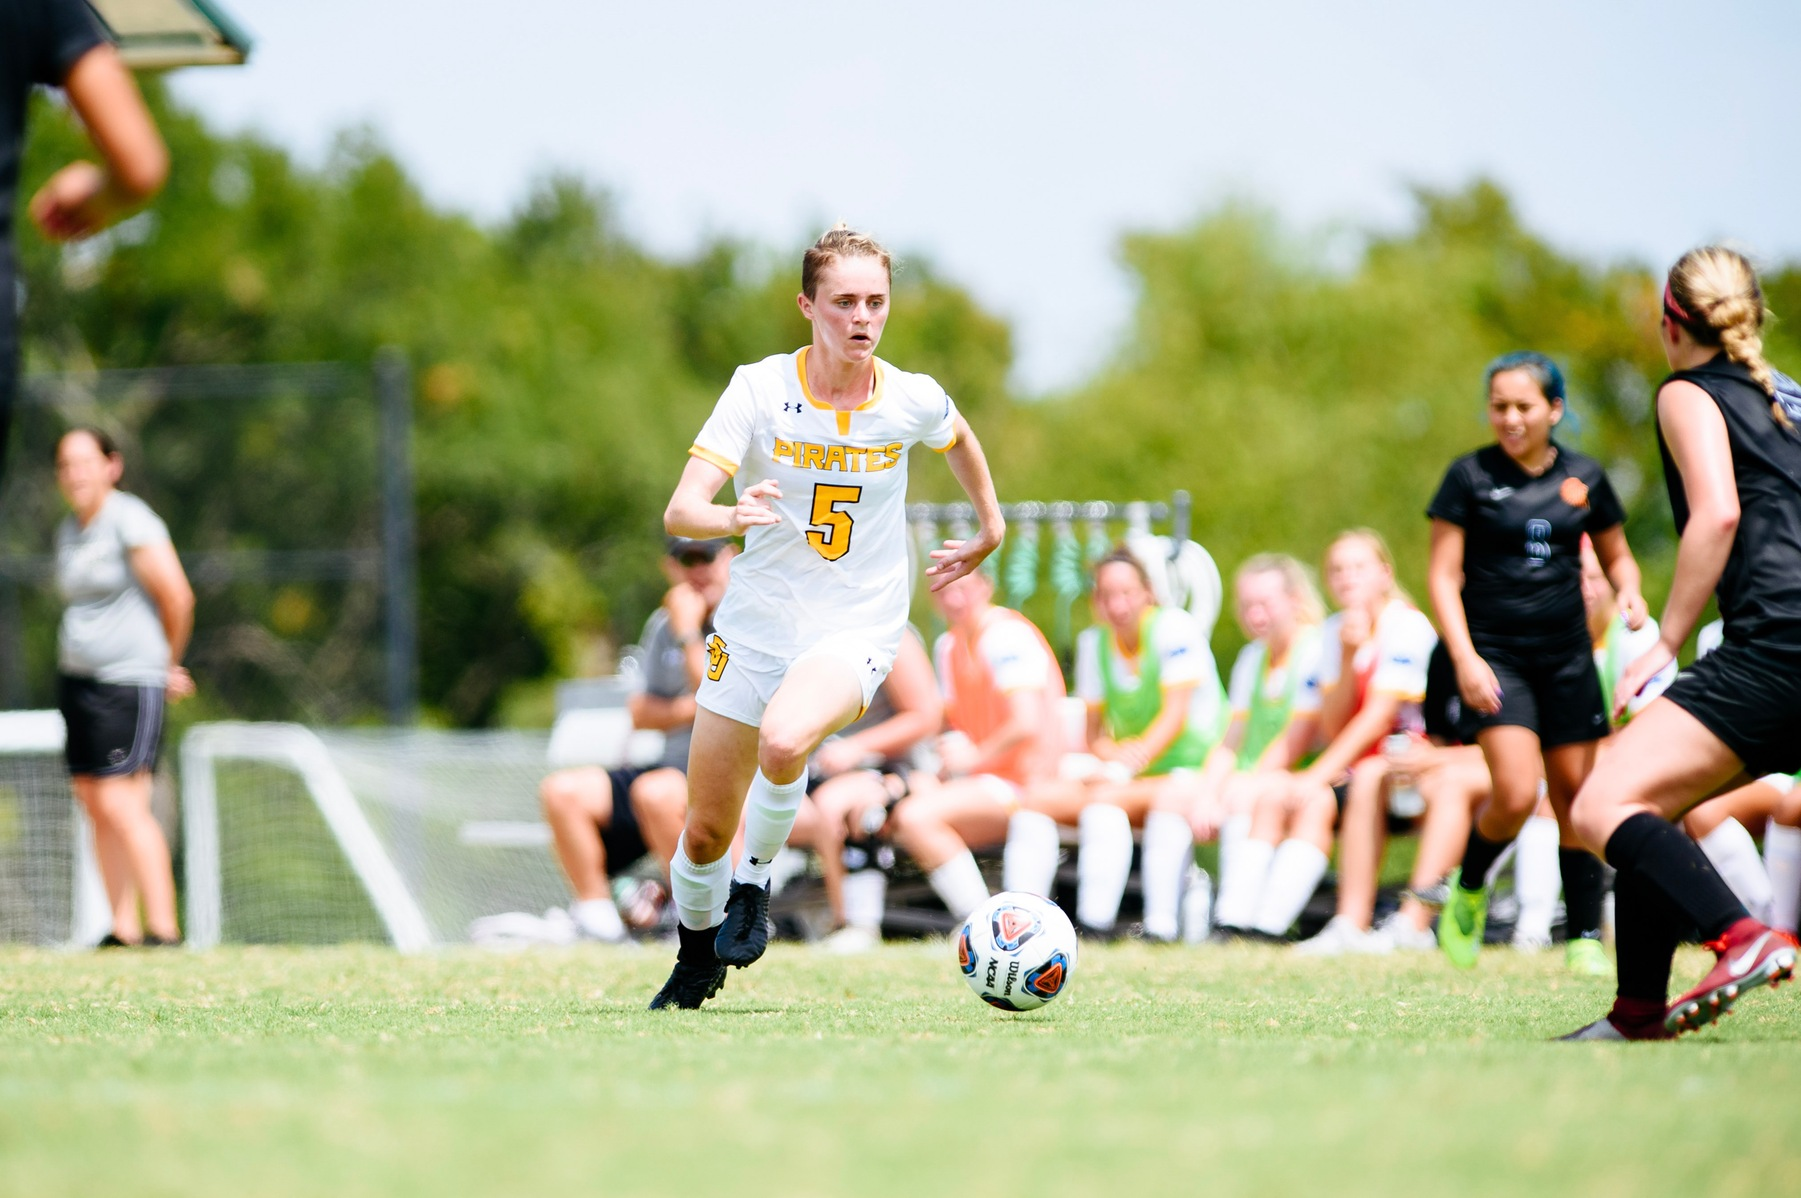 Women's Soccer Earns 7th Shut Out Victory